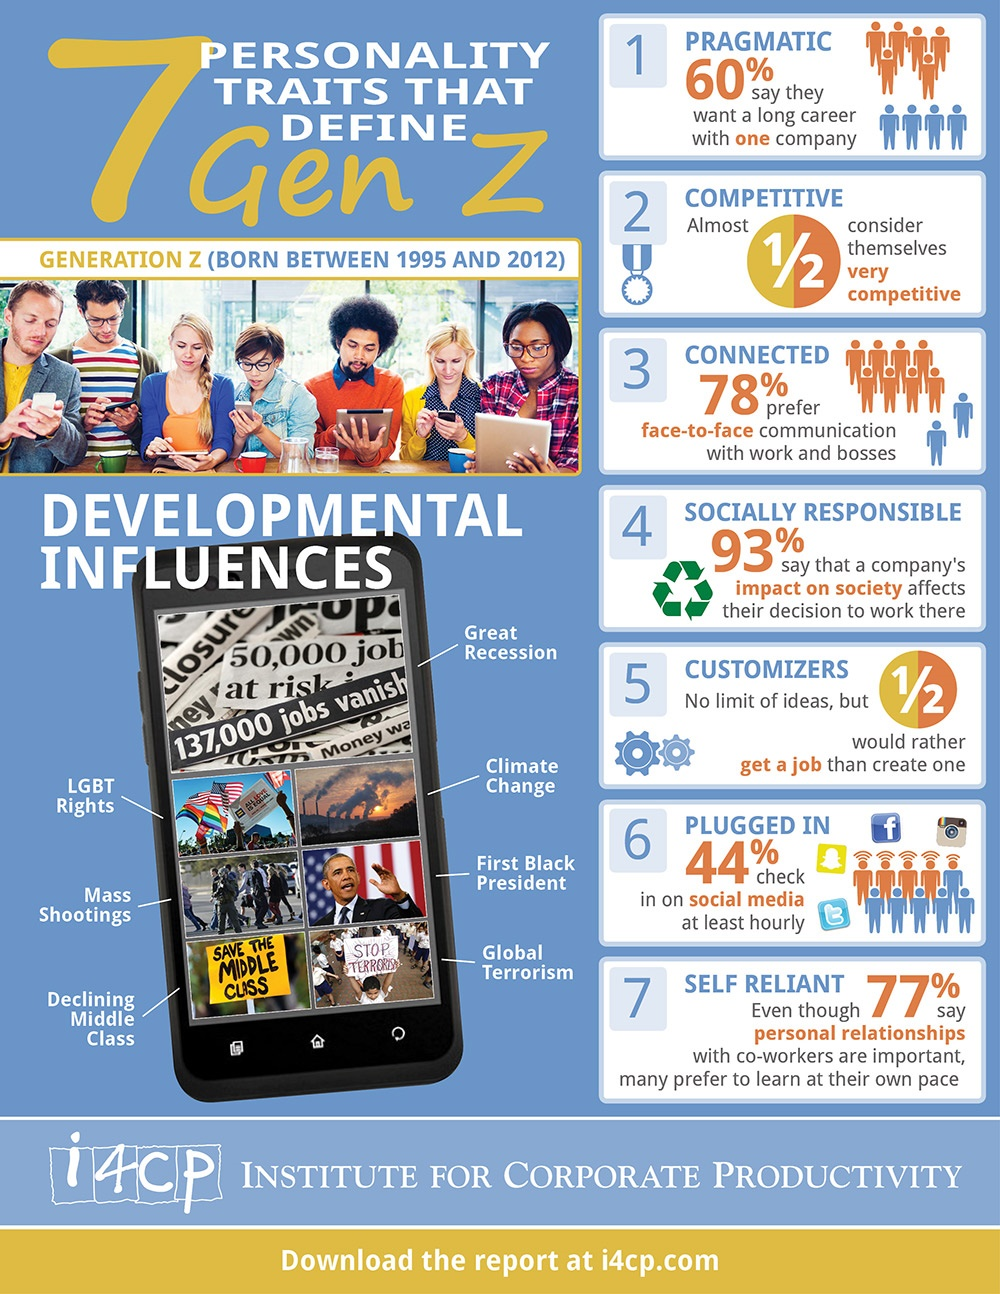 Source: Graphic from Generation Z: What Employers Need to Know, based on a peer survey of over 600 Gen Z high school students. The study was conducted by the Institute for Corporate Productivity in collaboration with Dr. David Stillman, co-author of When Generations Collide and The M Factor. Infographic available at https://www.i4cp.com/productivity-blog/2016/03/03/infographic-7-personality-traits-that-define-gen-z